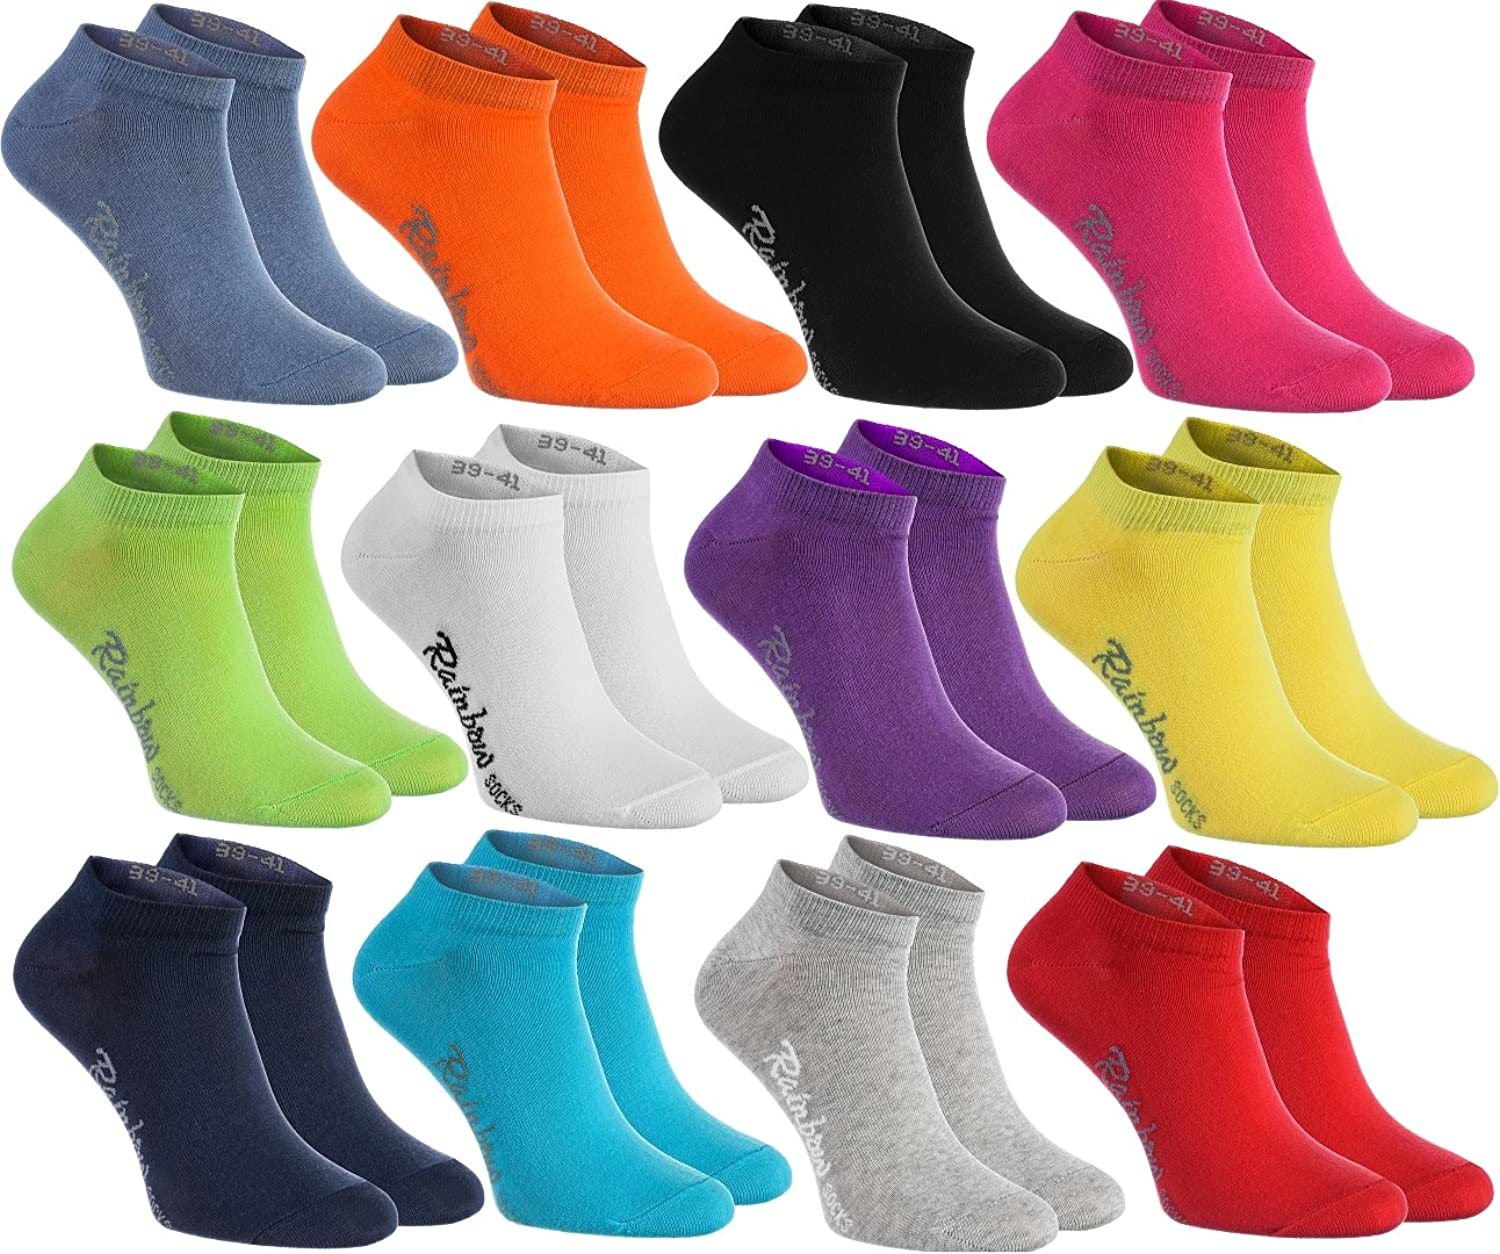 12 pairs of colorful COTTON Socks Pack Low Cut Crew Short Casual Everyday sizeXS